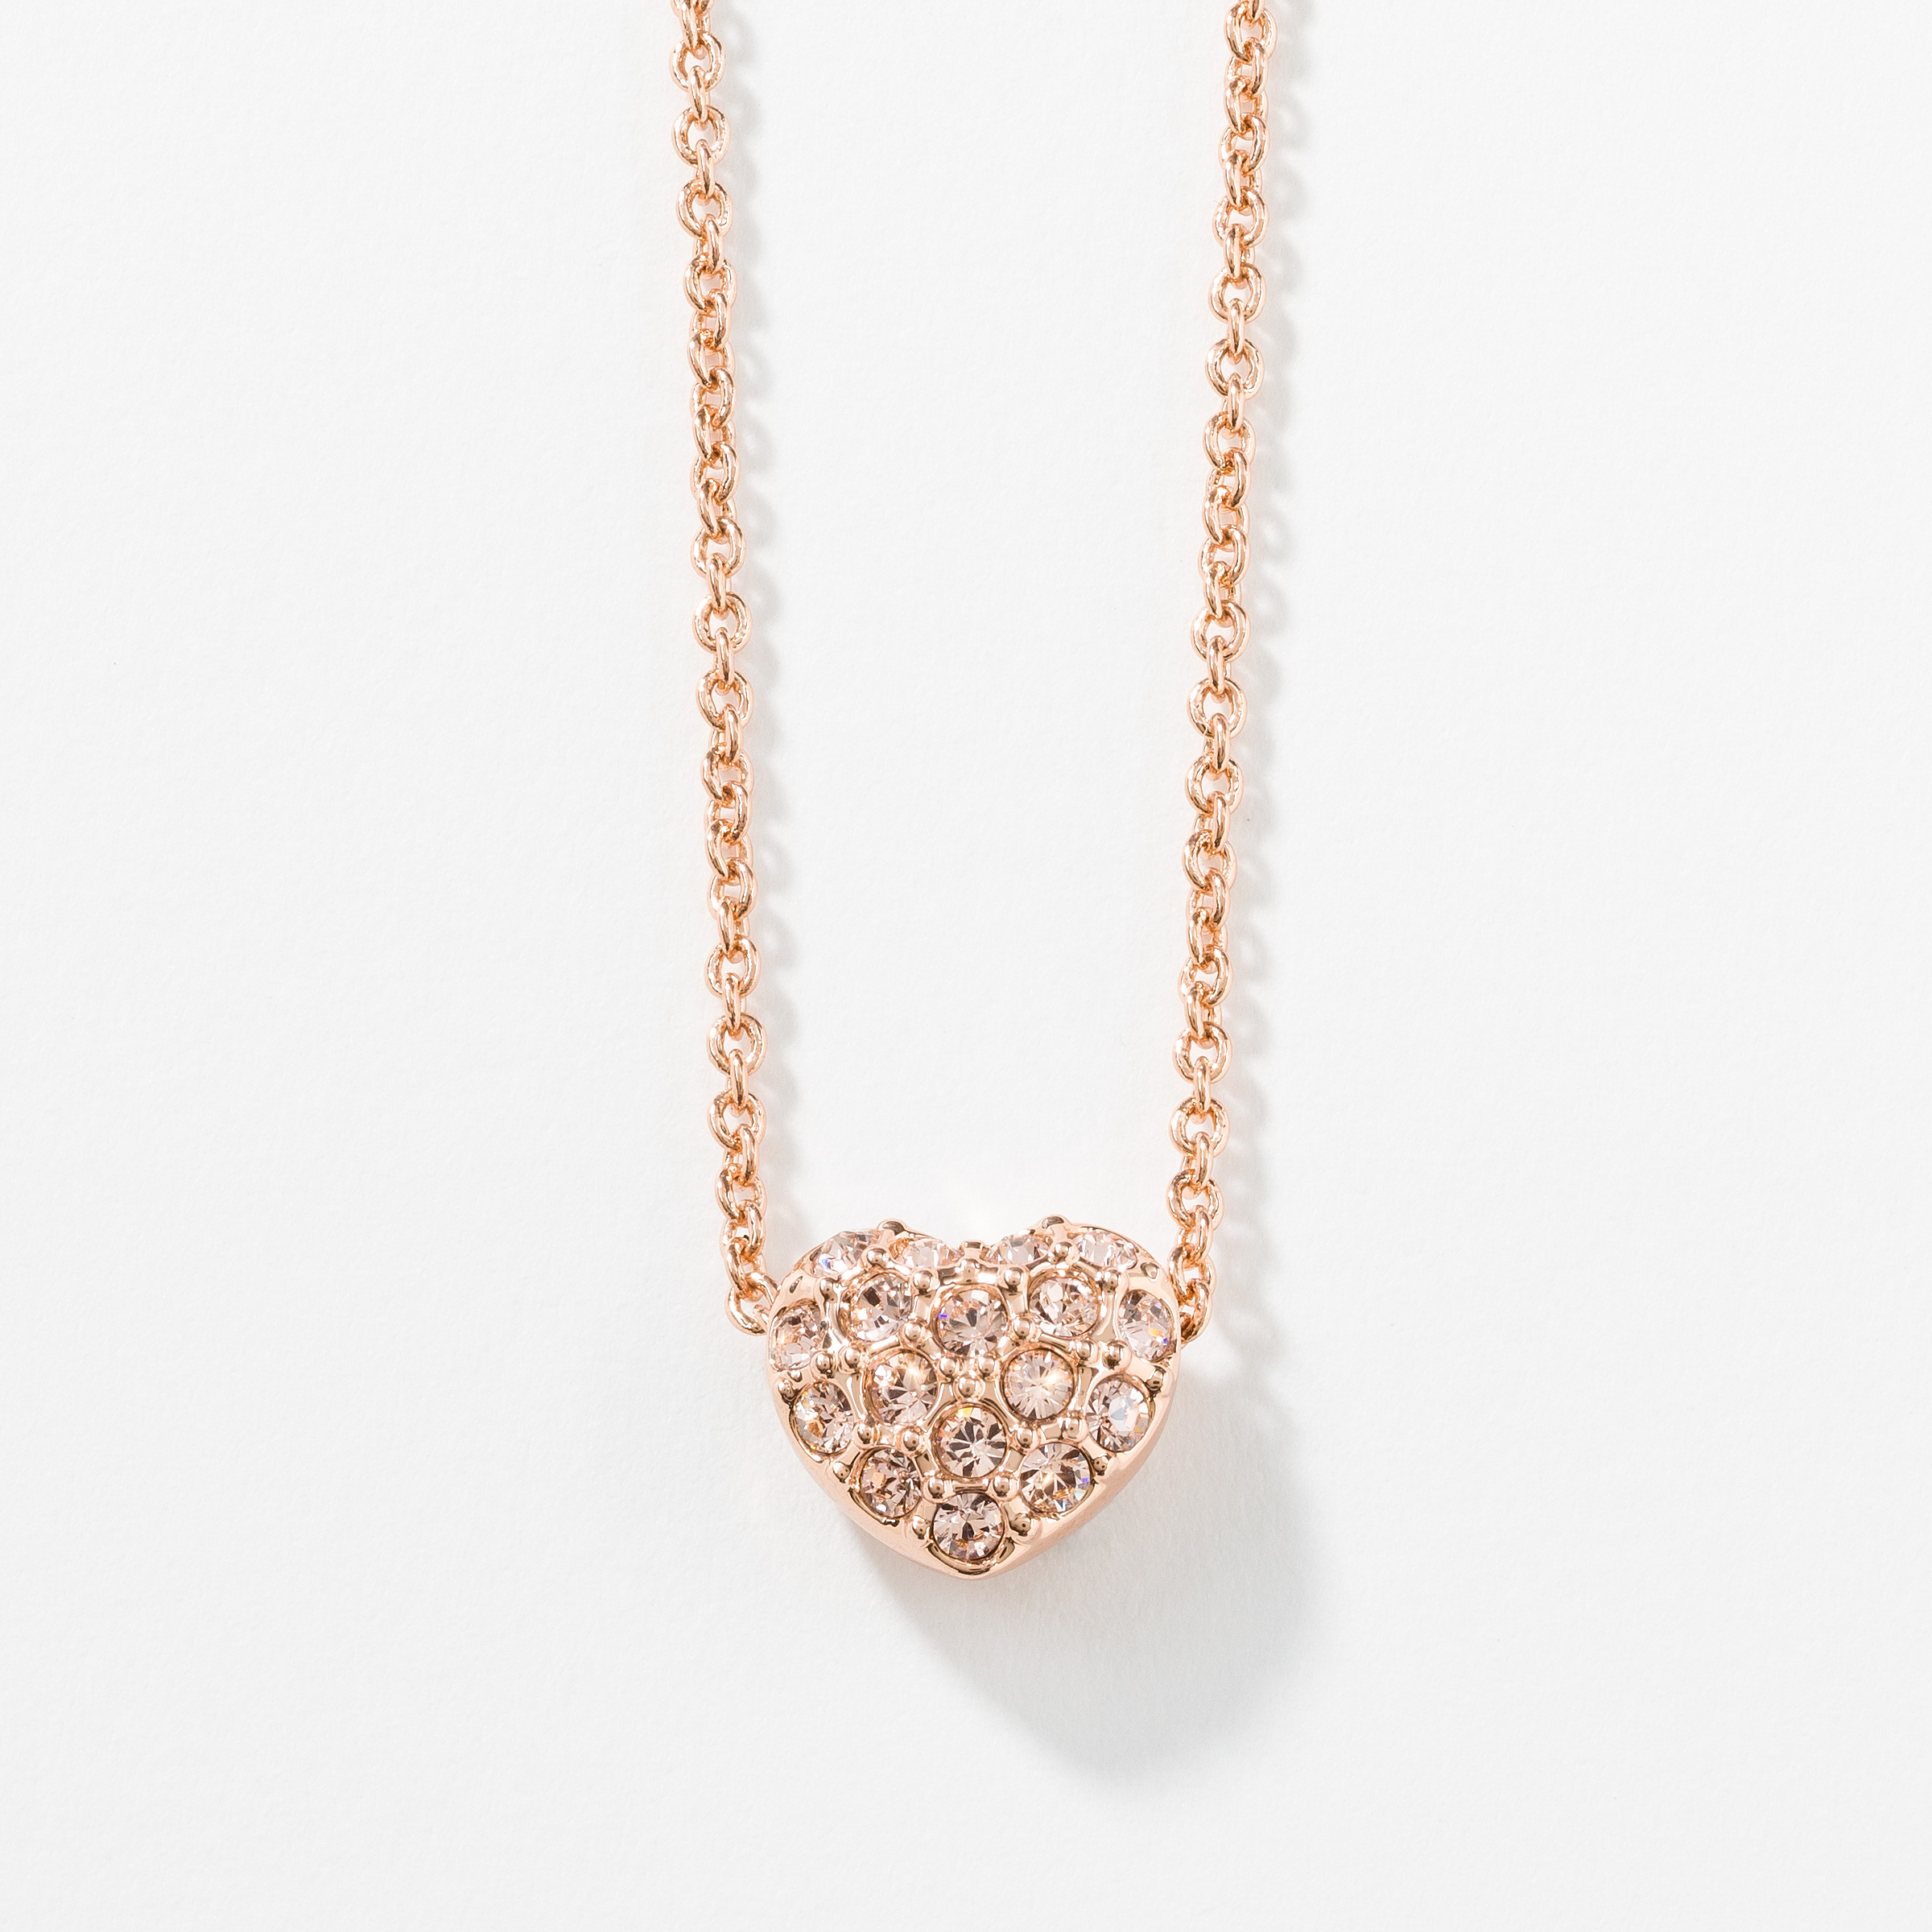 blush si fine stage b rose zm necklace necklaces stores morganite diamond p pendants ha jewelry gold collection